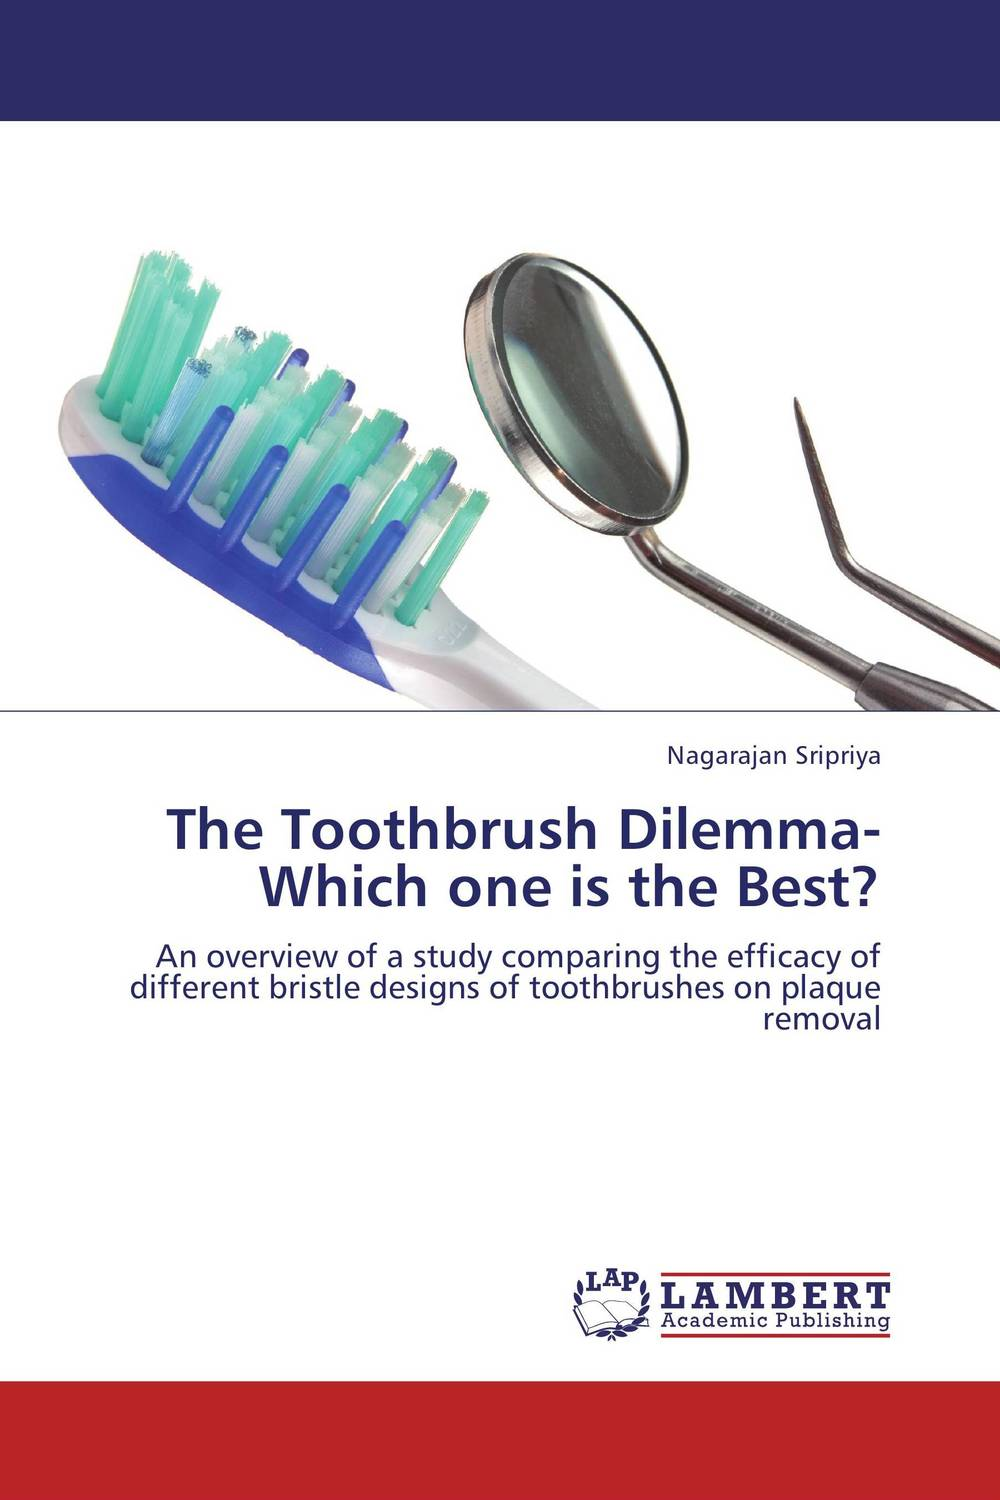 The Toothbrush Dilemma-Which one is the Best?